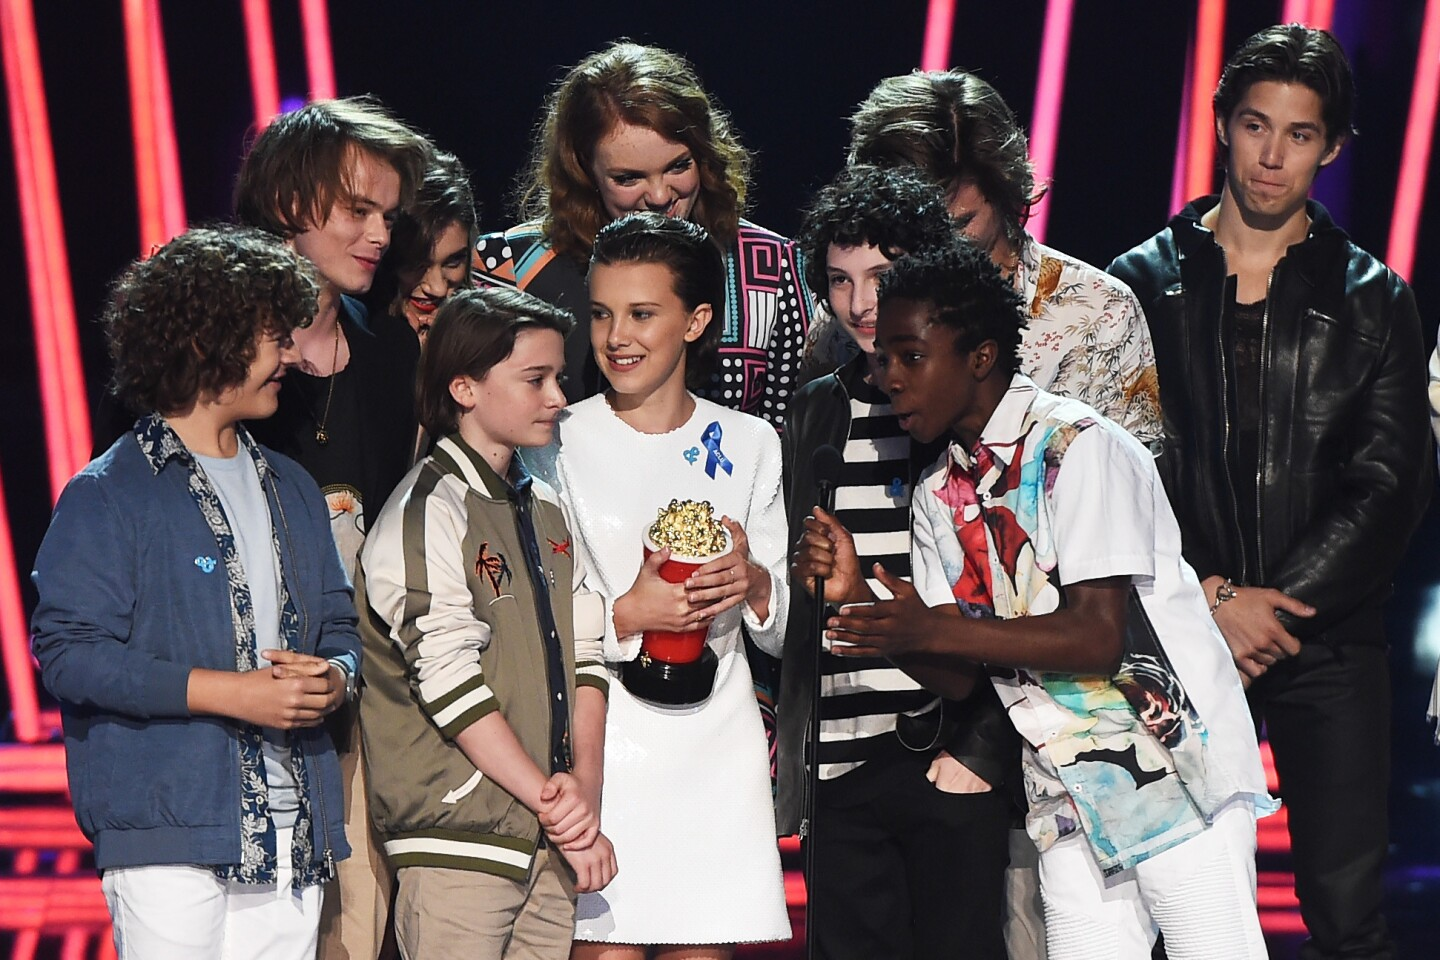 """The cast of """"Stranger Things"""" accepts Show of the Year award during the 2017 MTV Movie & TV Awards at the Shrine Auditorium in Los Angeles."""